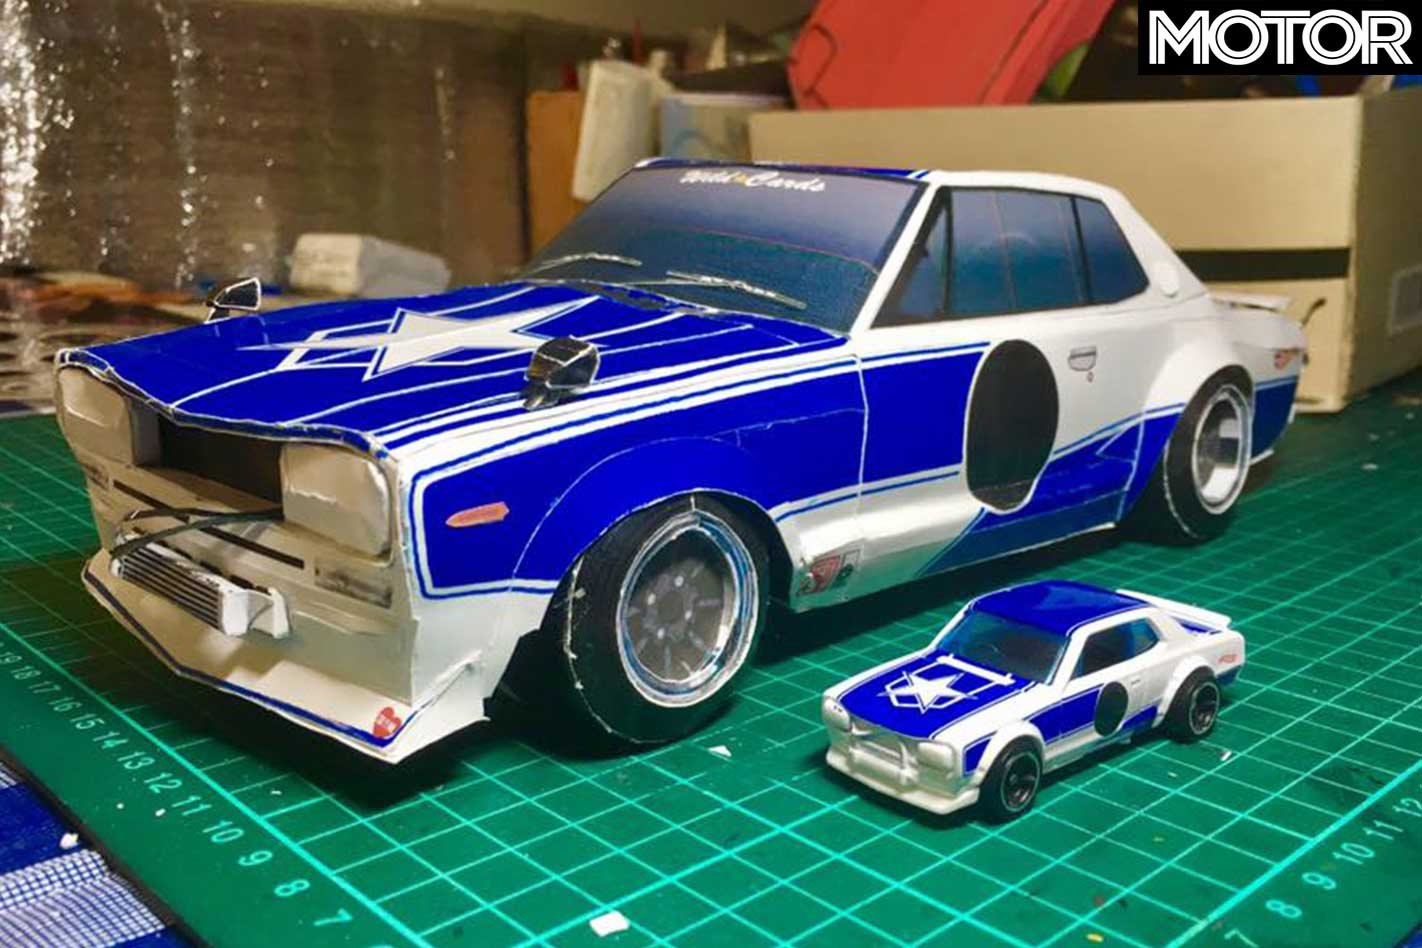 Paper car models created by 'Hacaosuka Designs'